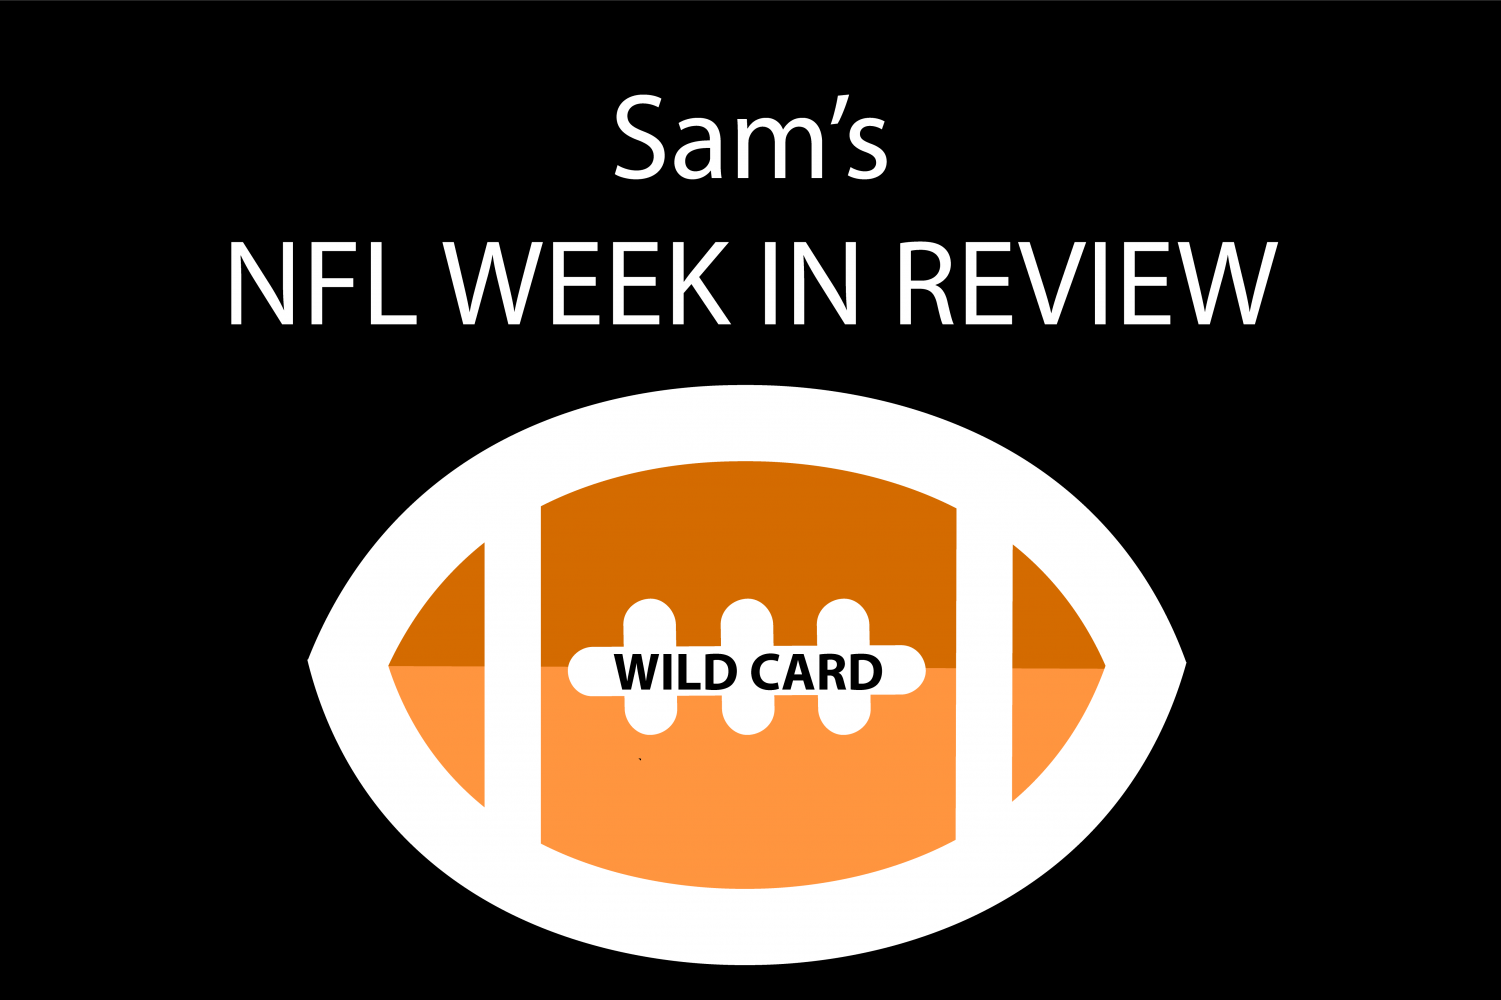 Sam Kuykendall recaps the NFL Wildcard Weekend games and outcomes.